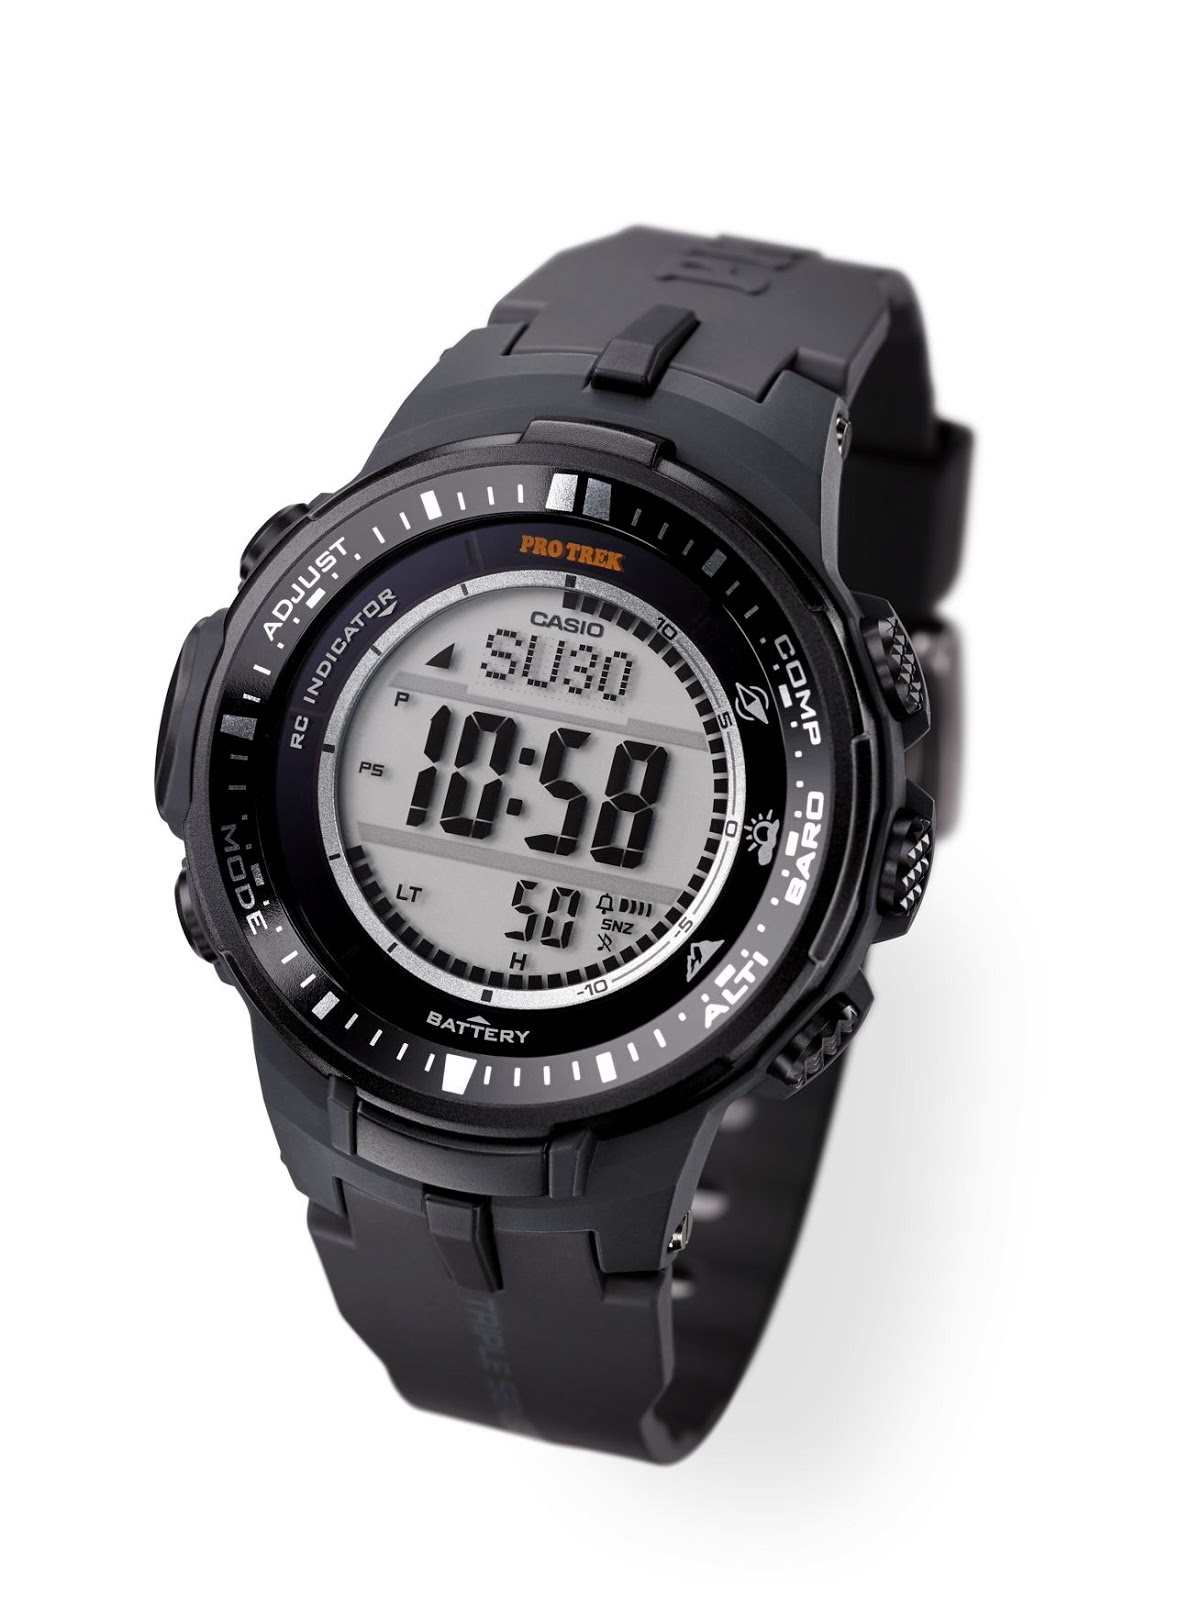 b3588de69a1 The new PRW-3000 watch features an upgraded system for measuring compass  bearing